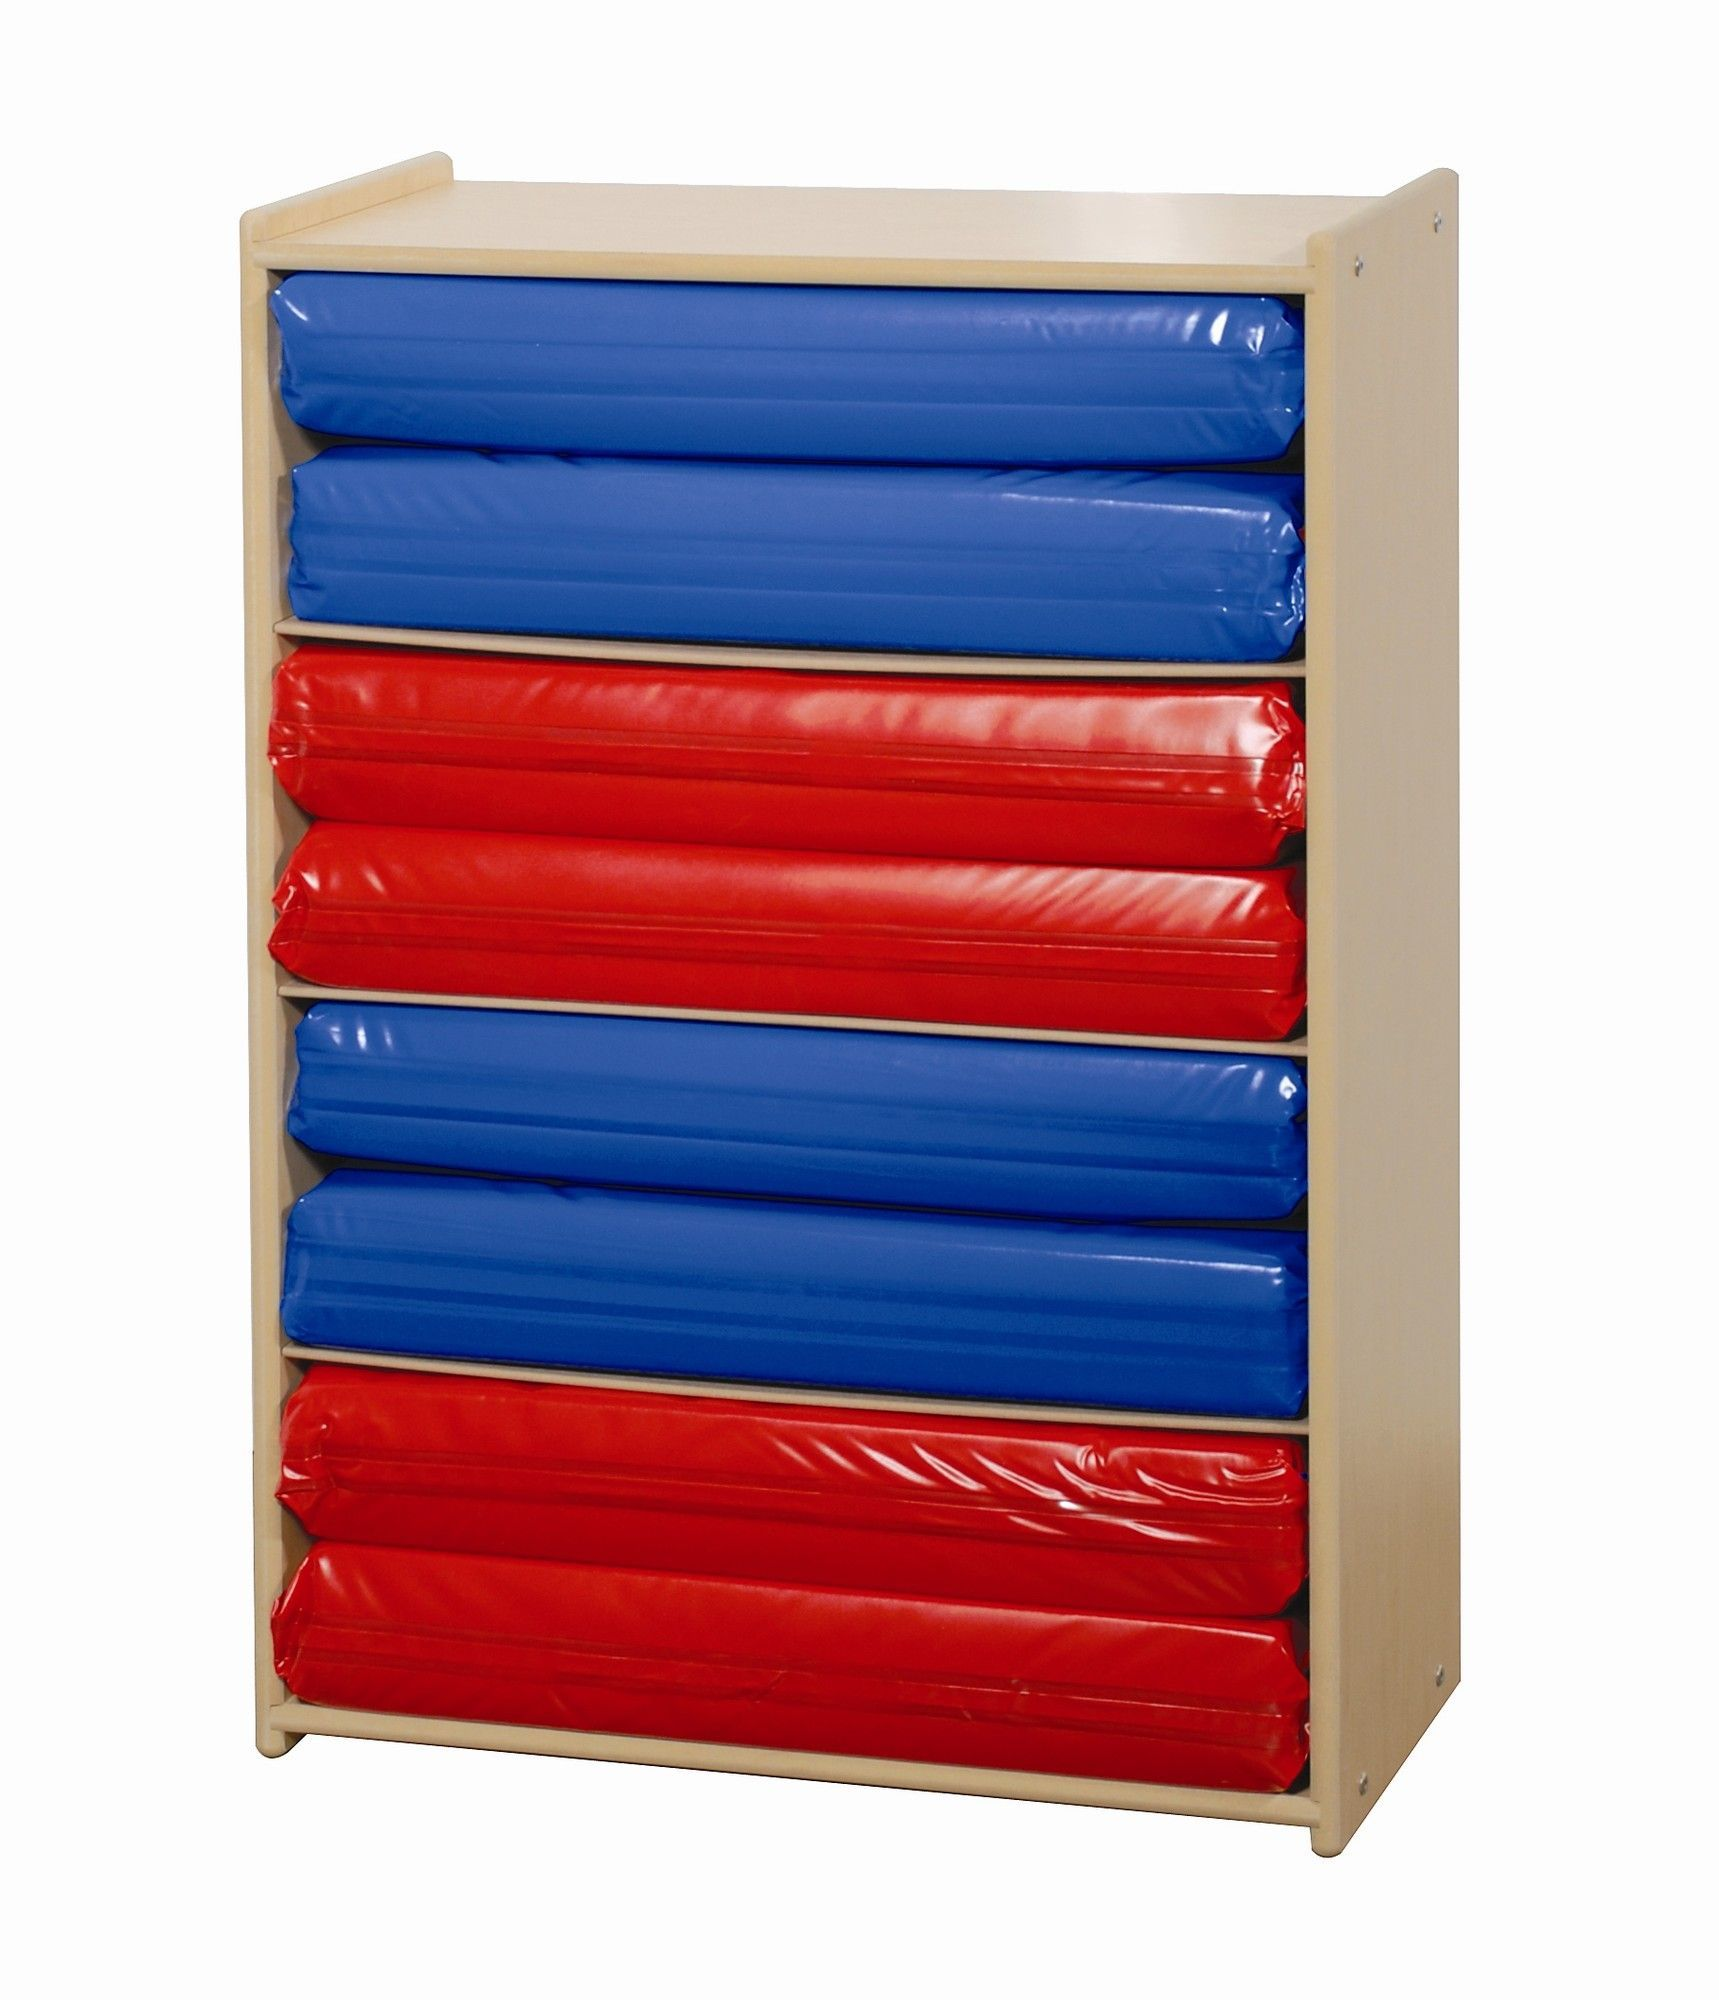 mats rest products cubby pin and compartment kindergarten storage classroom mat woods pinterest